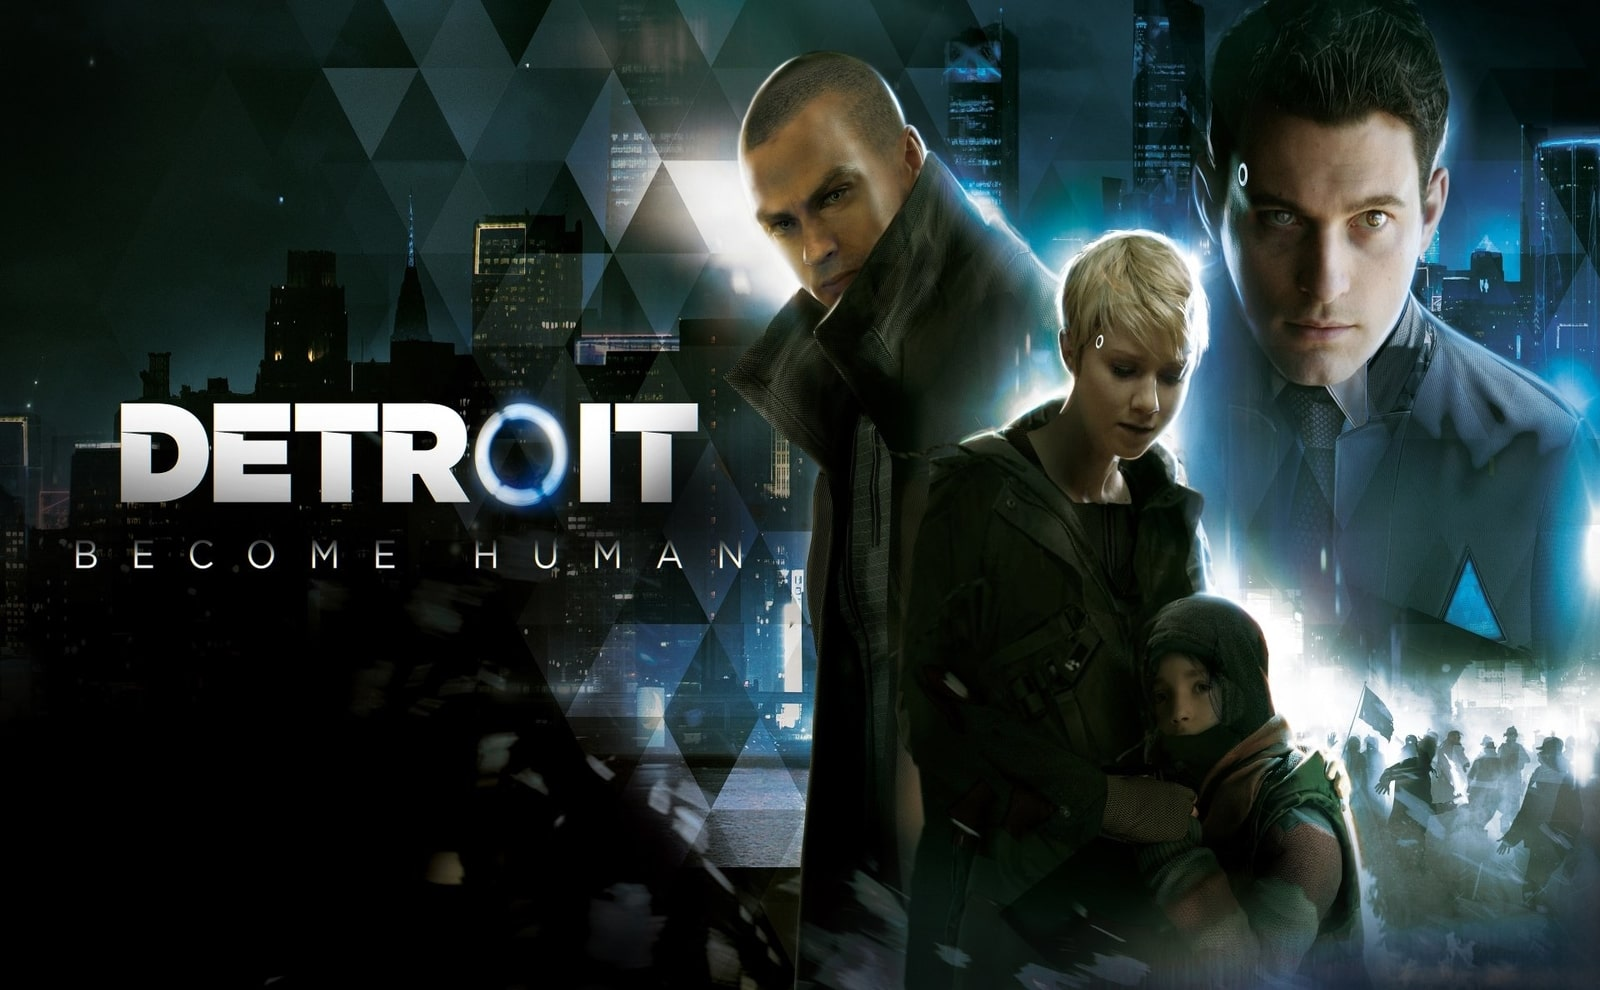 """Android is also human - the essence of humanity in """"Detroit: Become Human"""""""